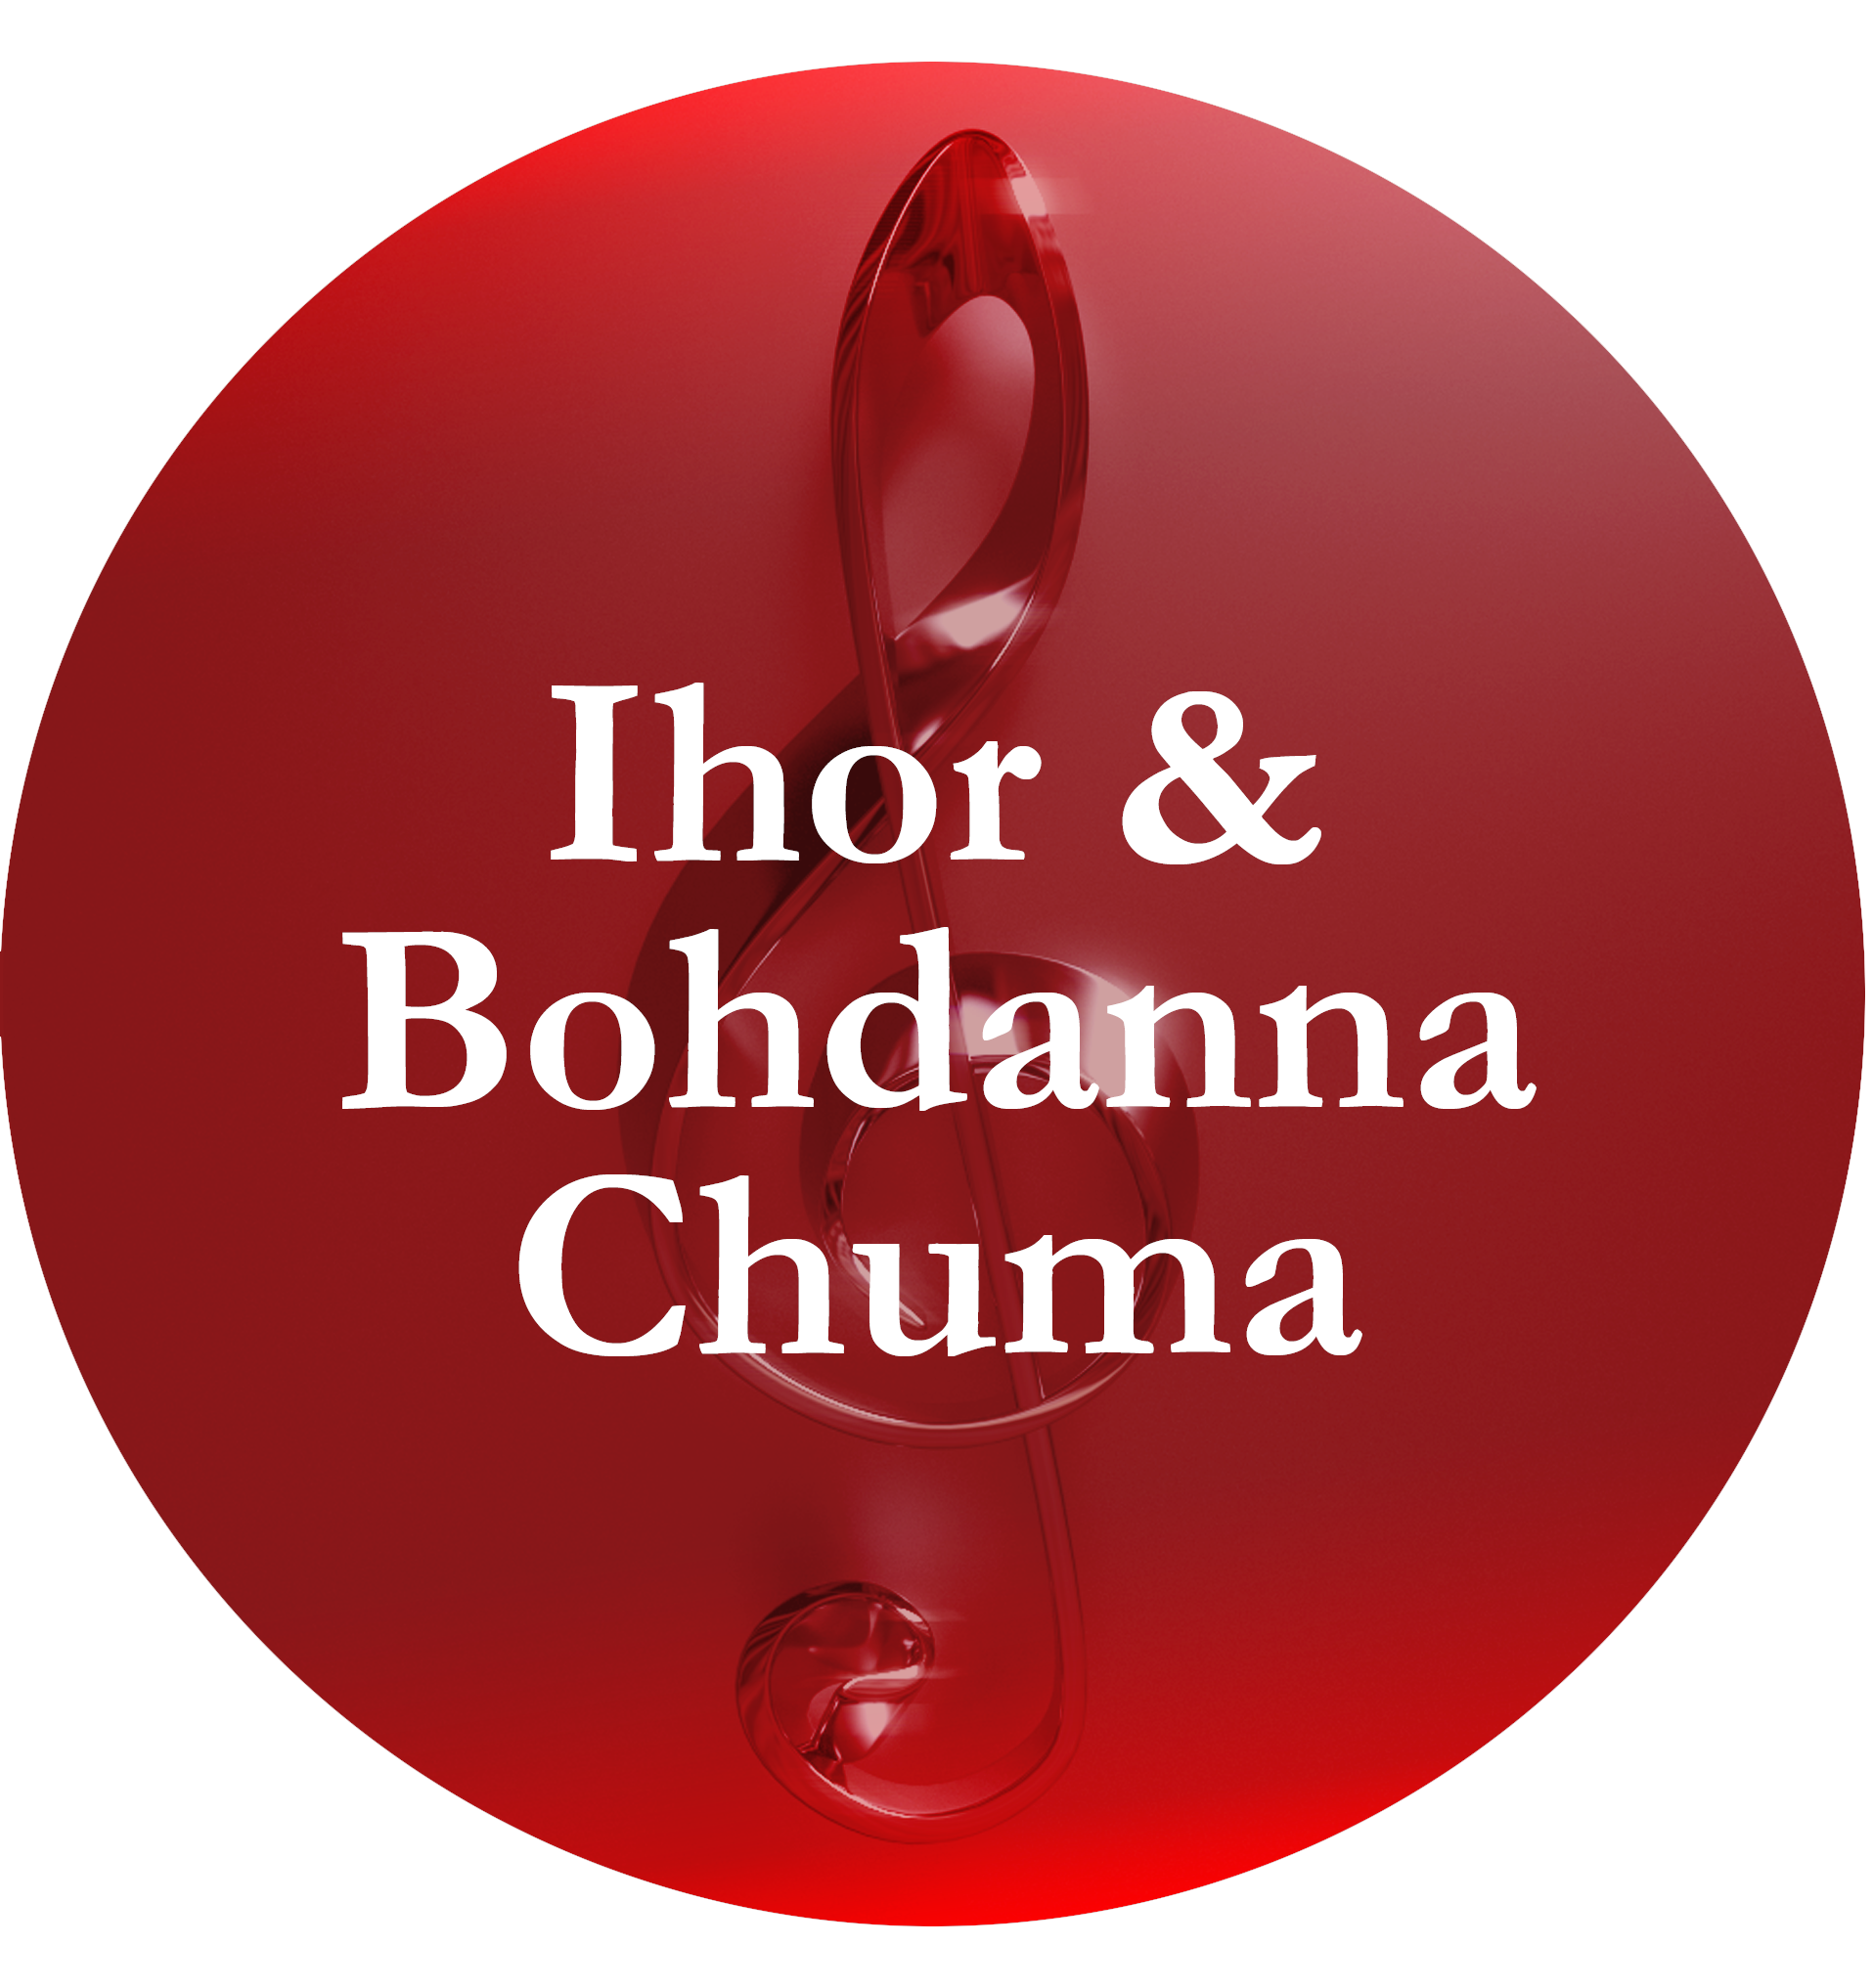 ihor and bohdanna chuma.png